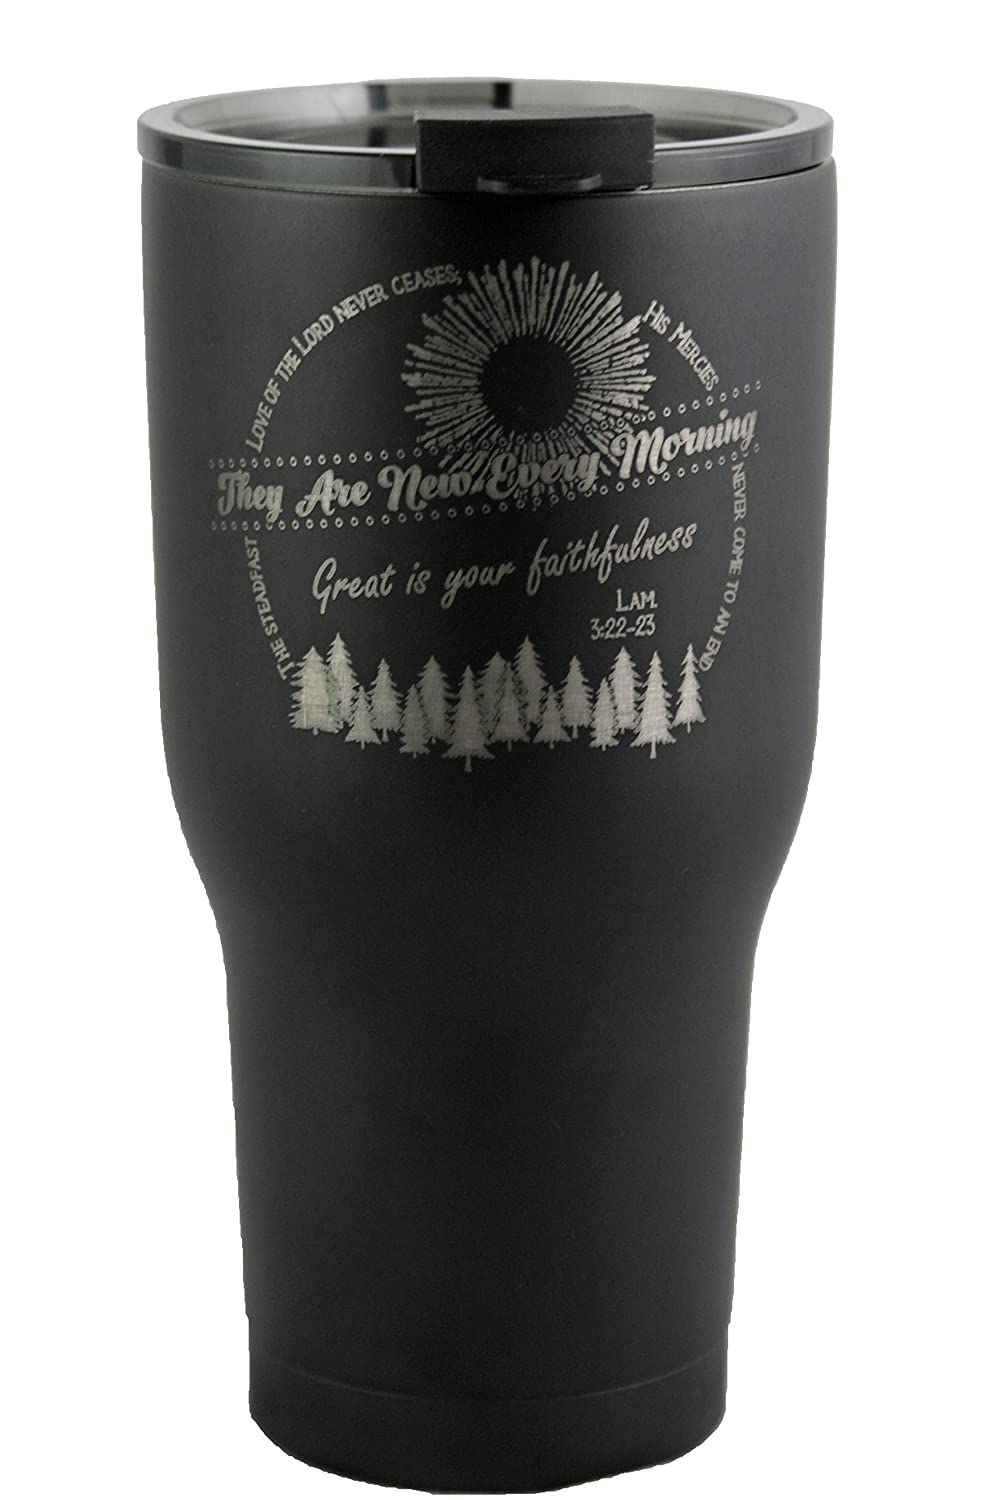 Teal, 20oz Lamentations Engraved Travel Insulated Tumbler